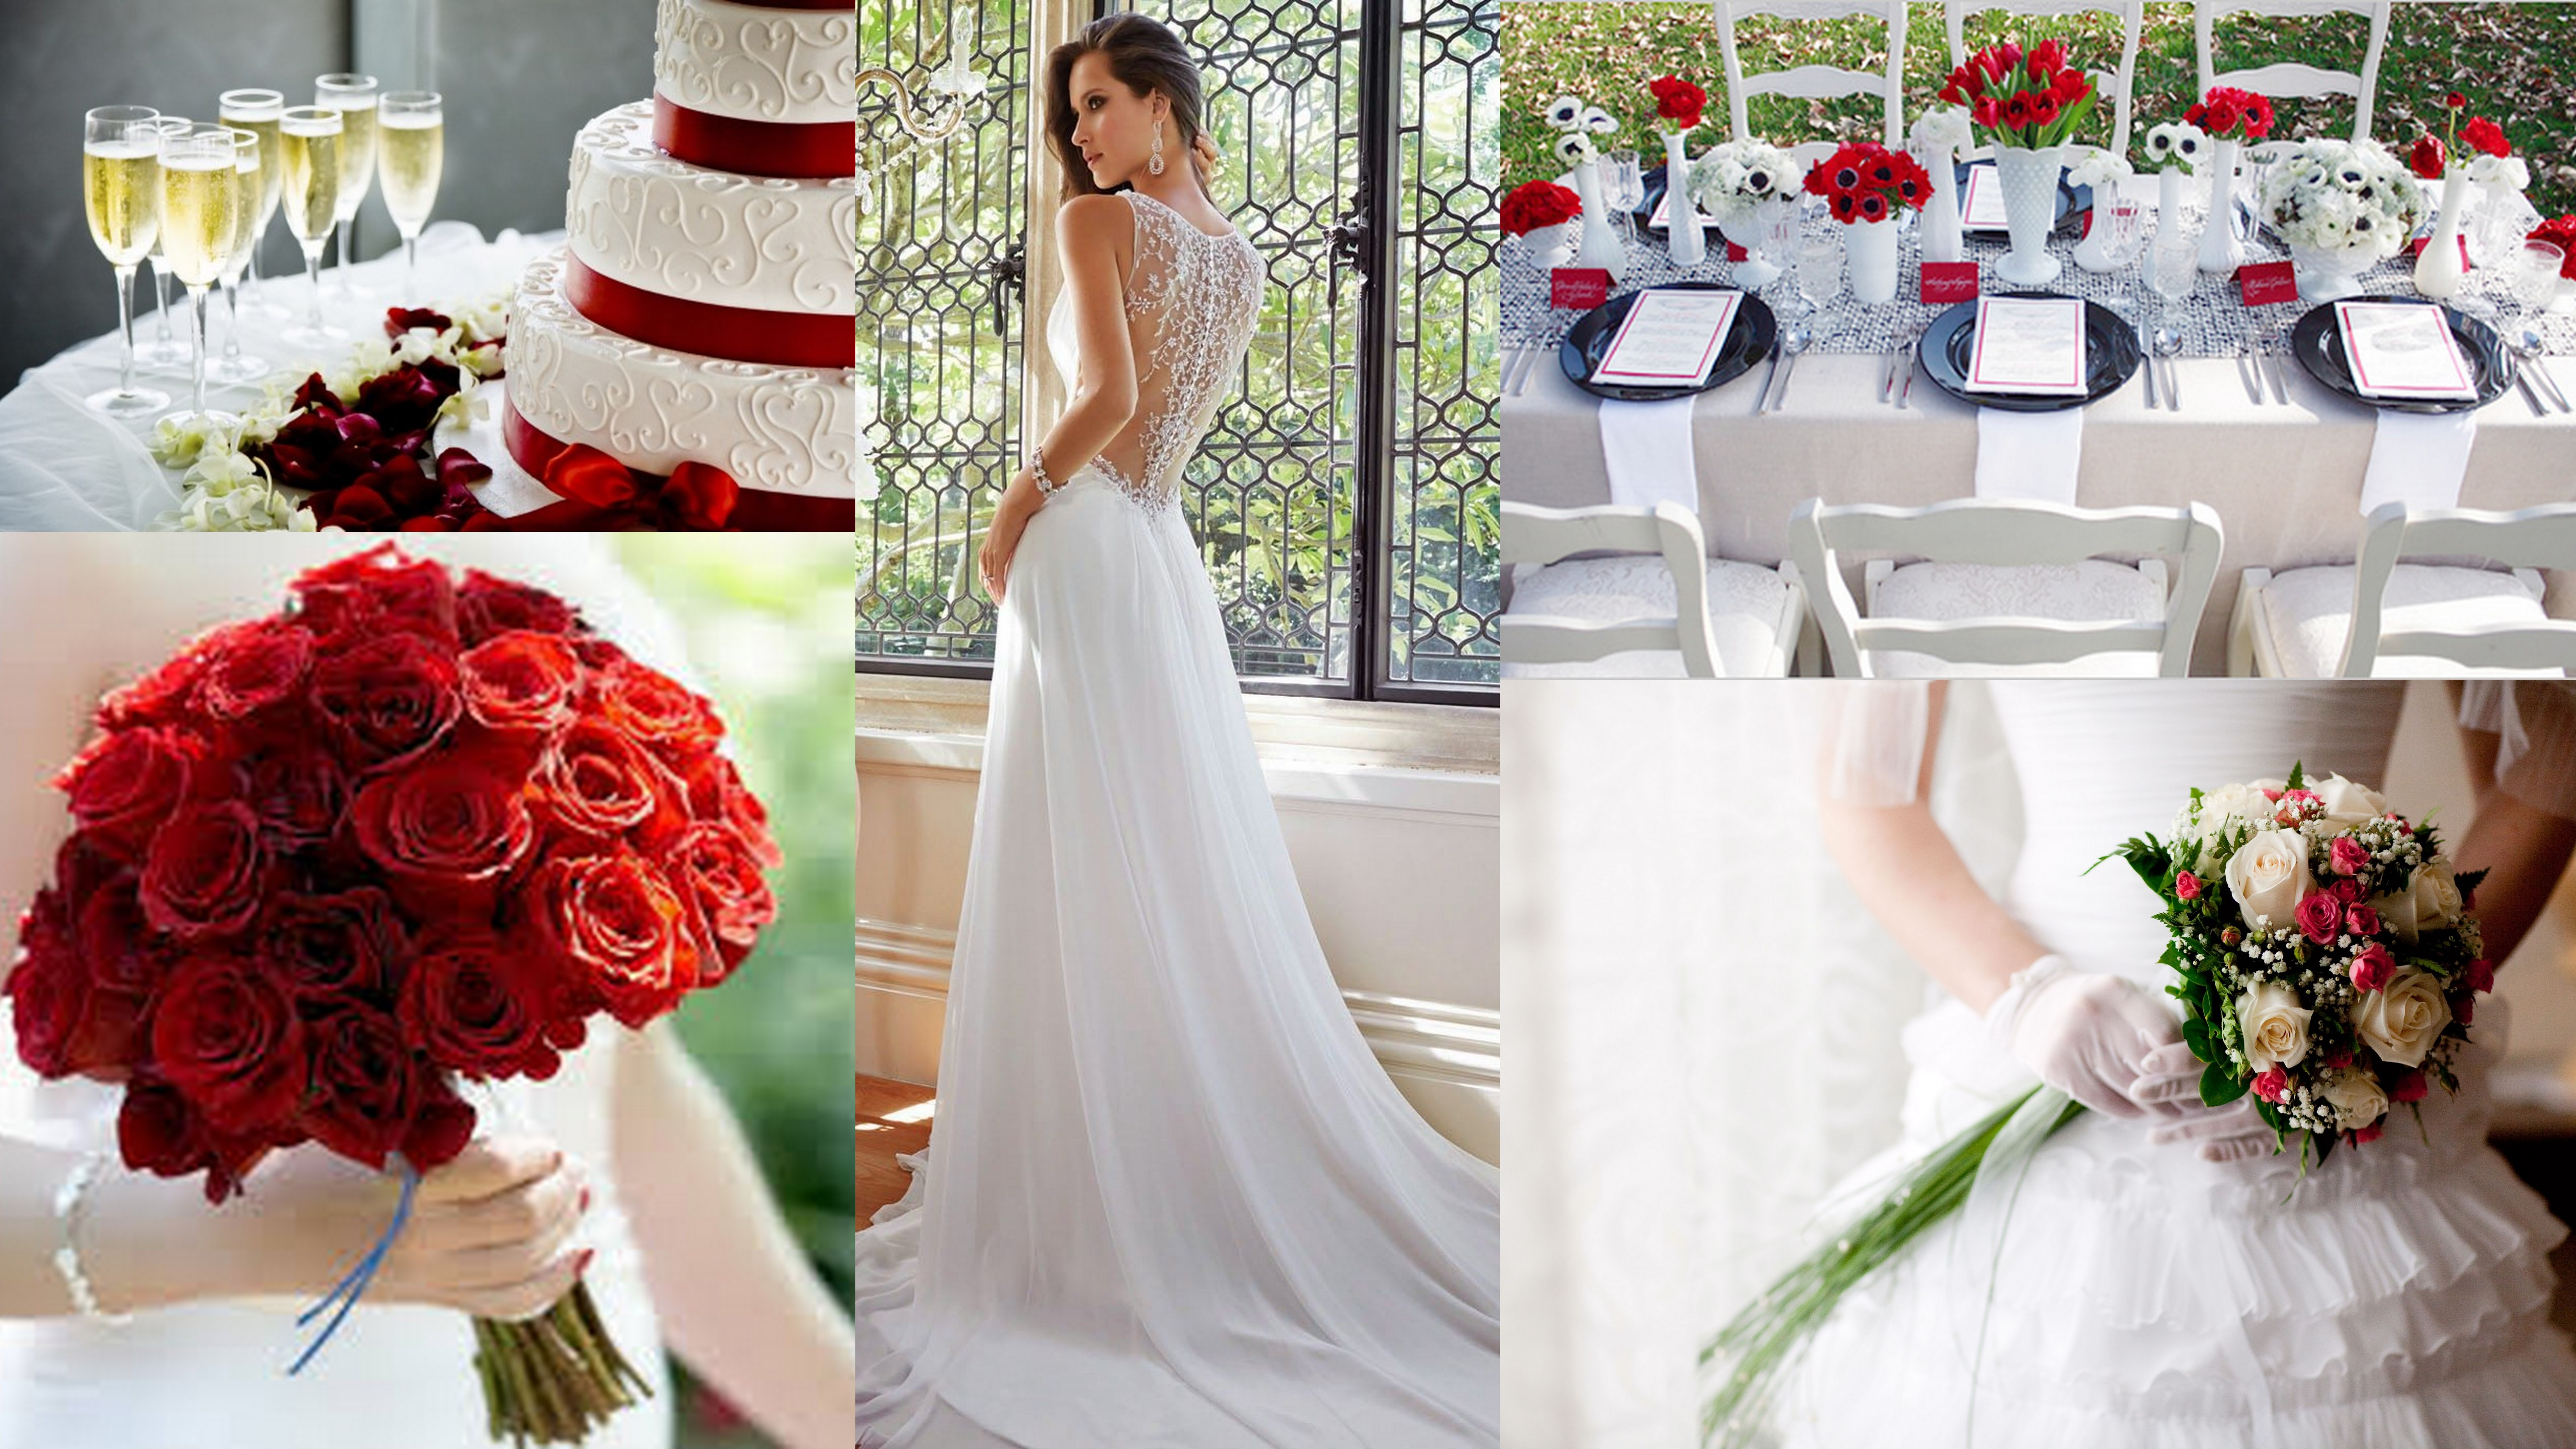 Wedding Dress Ideas: Top 5 Tips To Find Ideal Wedding Dress For Your Body Type